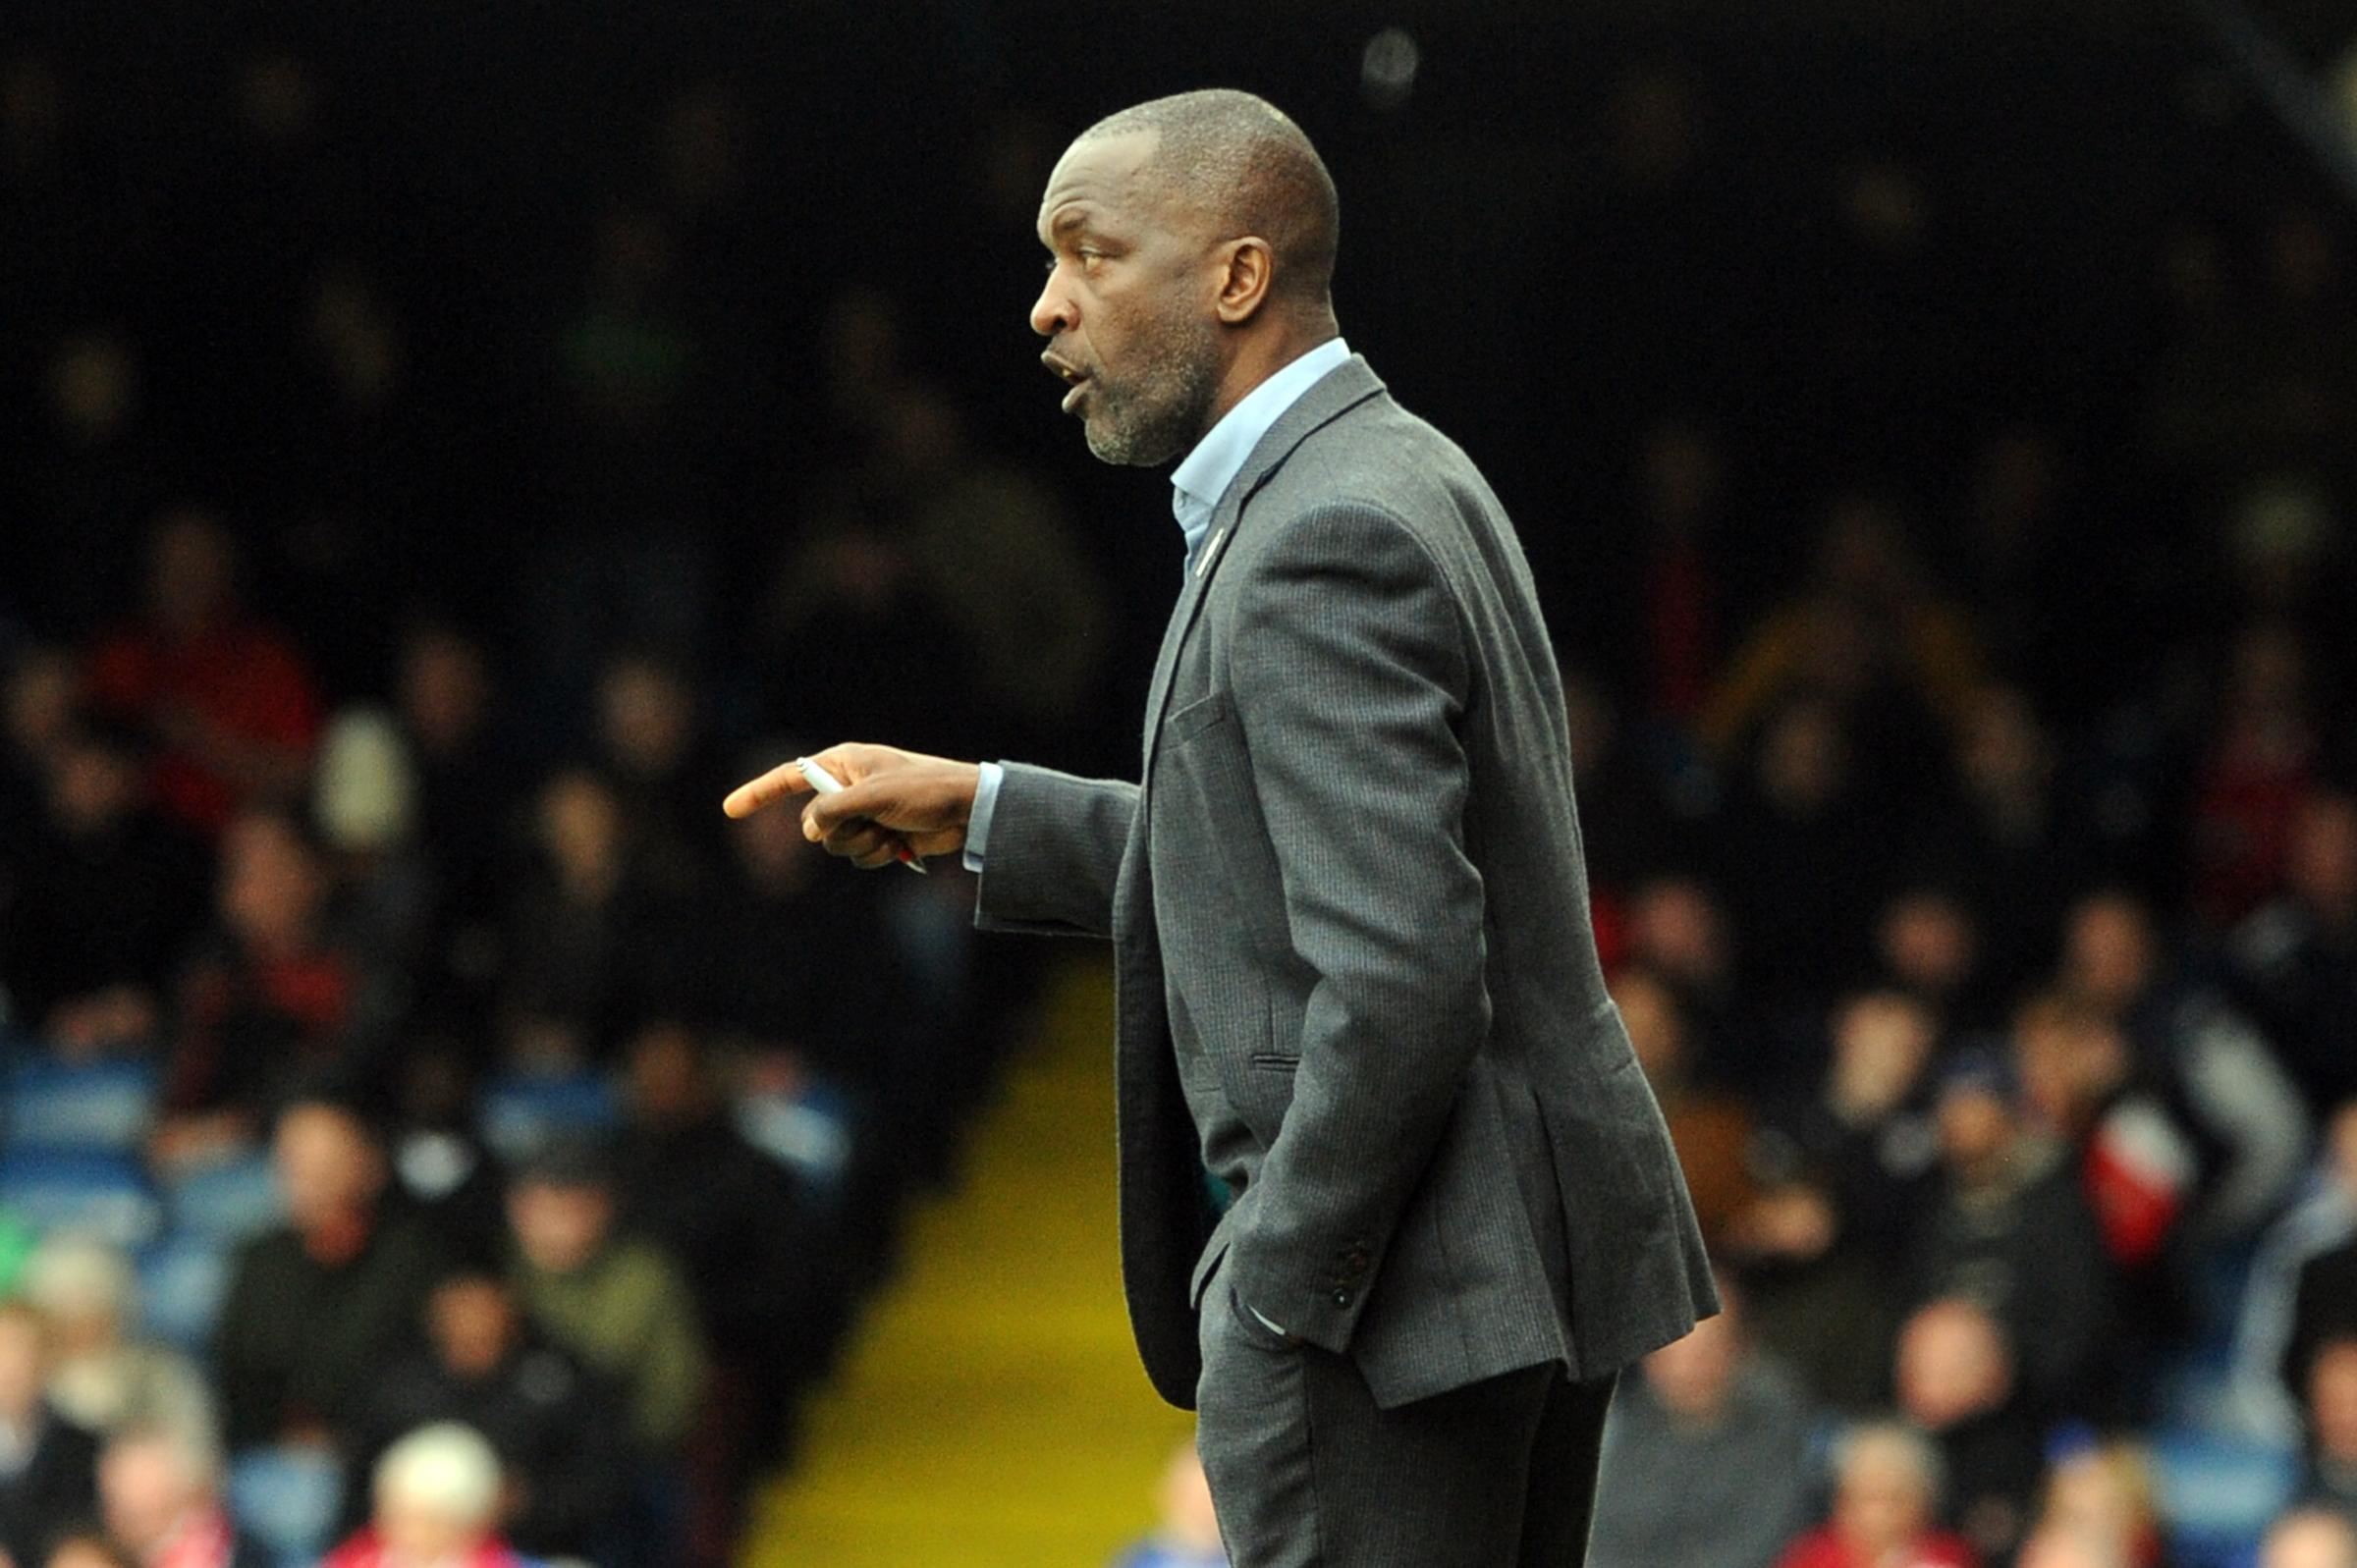 Wanting a win - Southend United manager Chris Powell